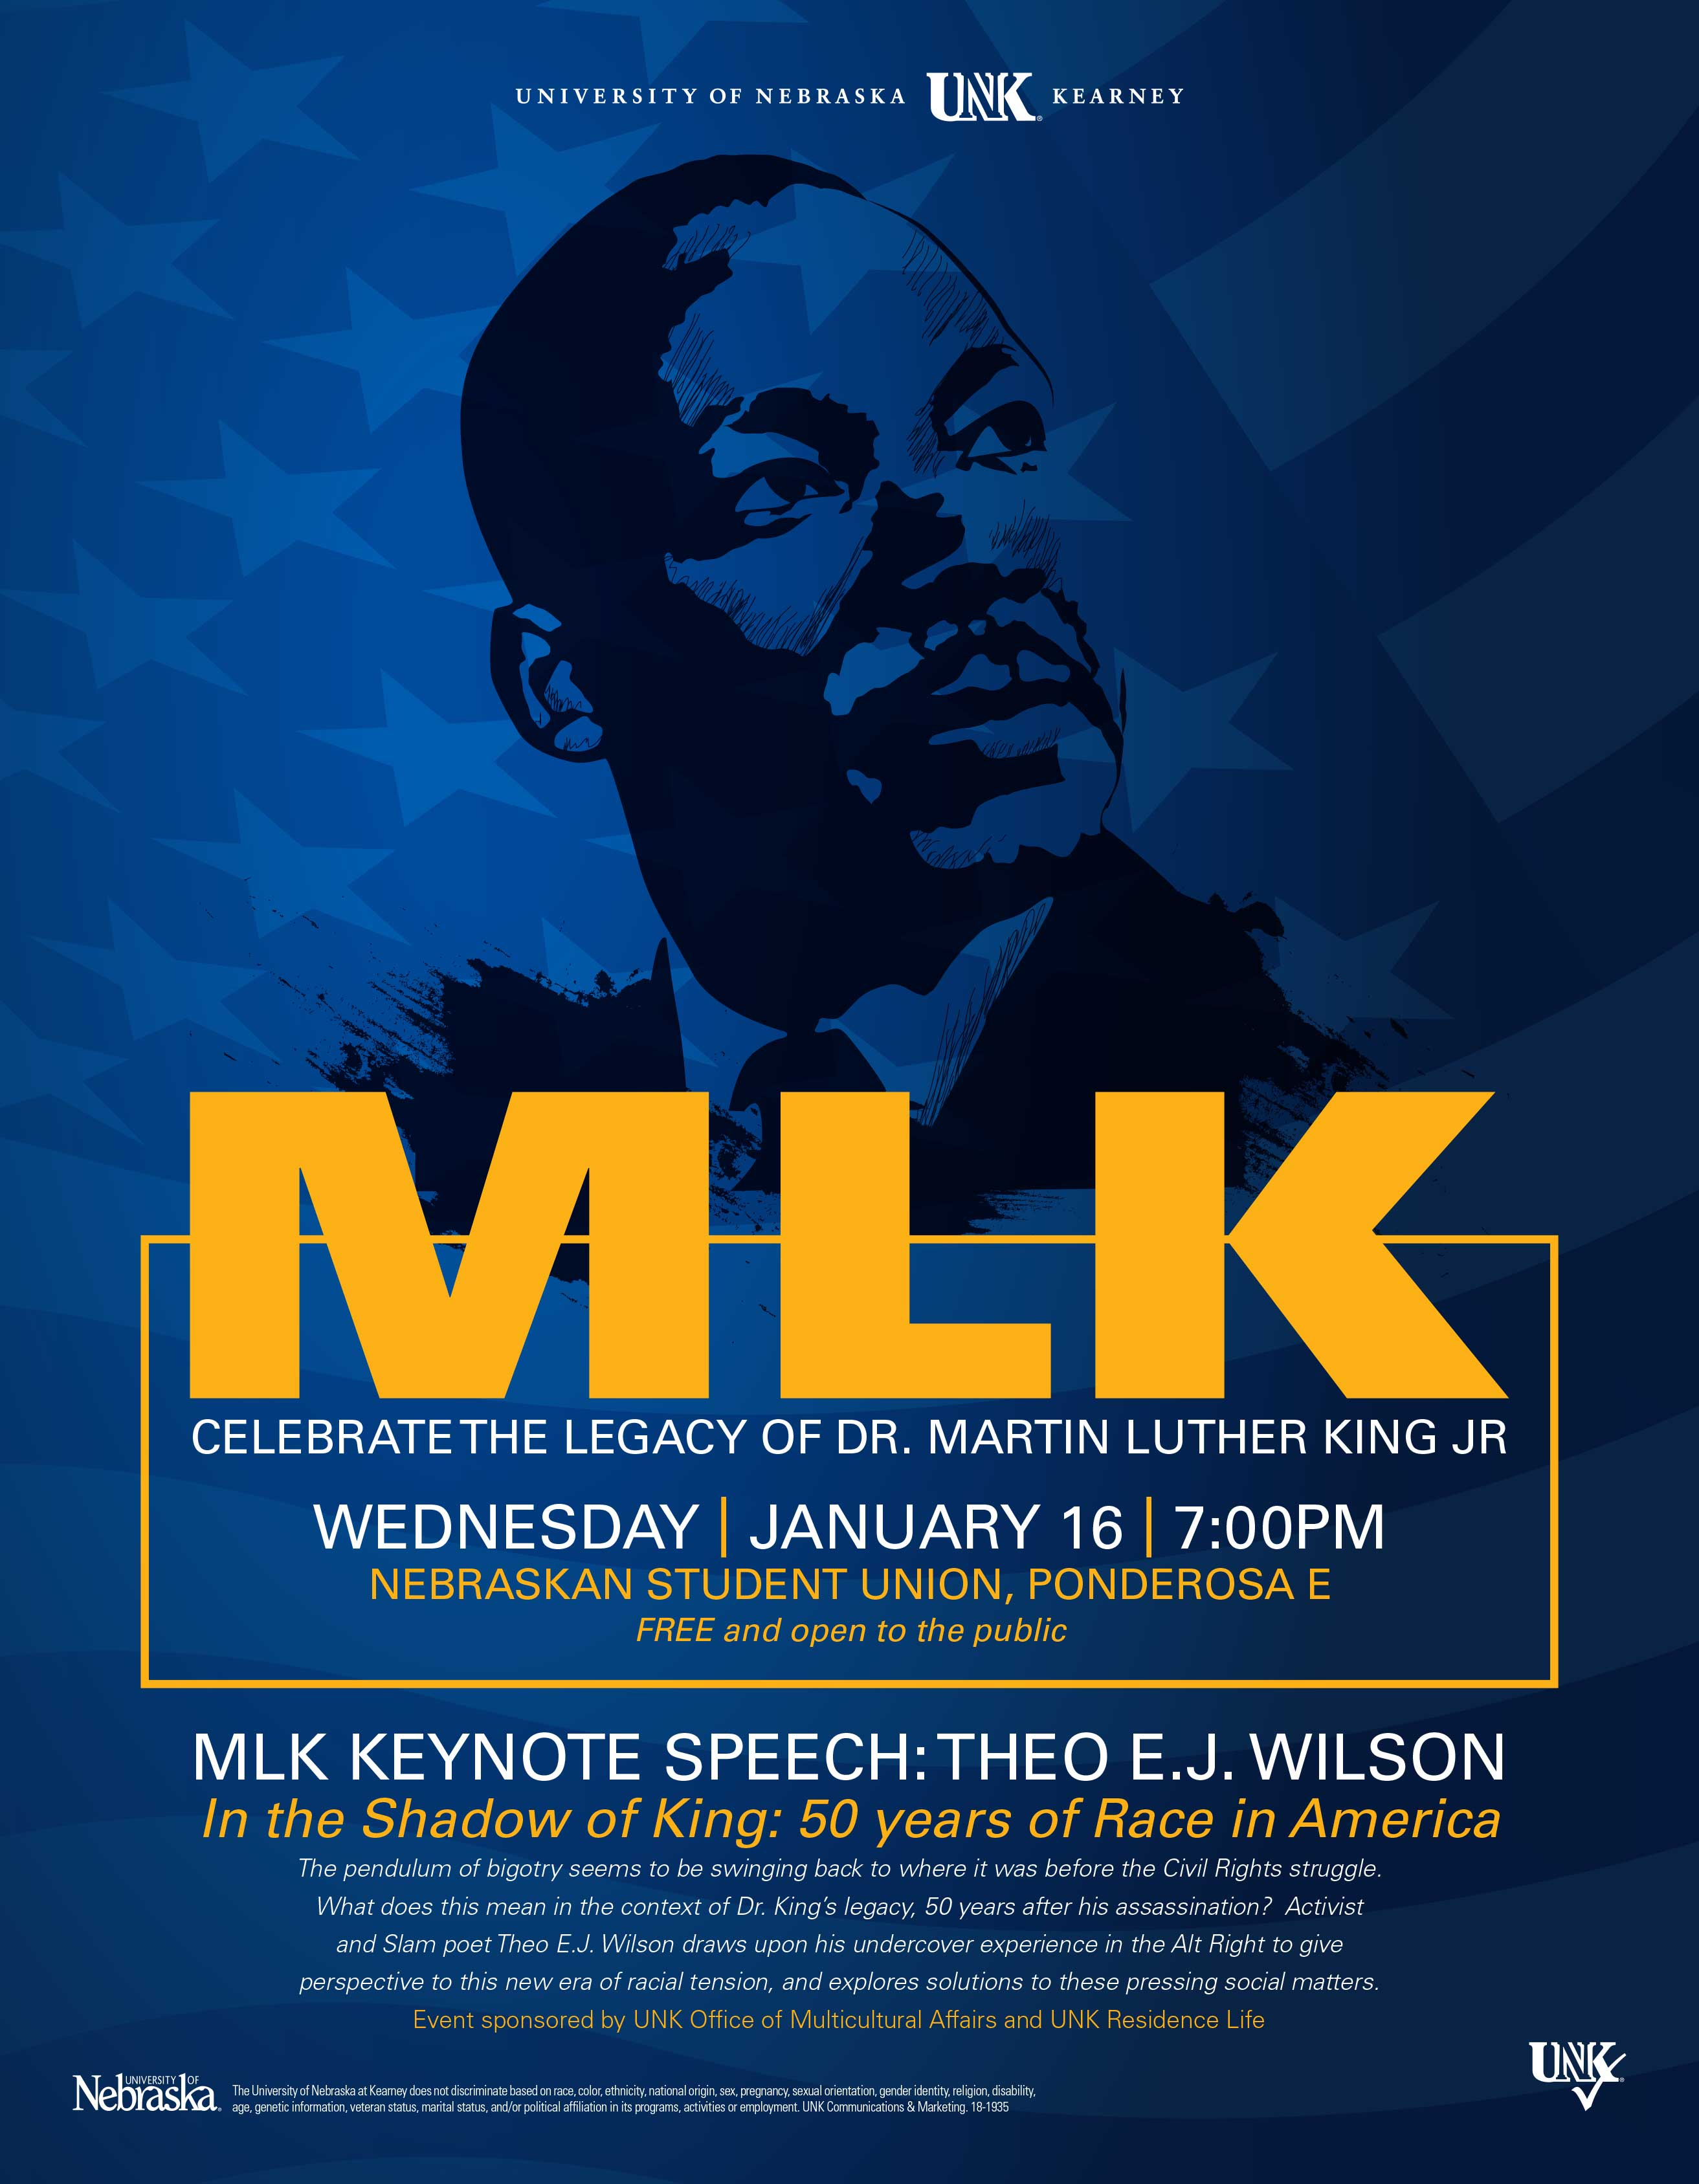 January 16, 2019 7:00 PM - 09:00 PM NSU, Ponderosa Room E The Office of Multicultural Affairs and UNK Residence Life in cooperation with the Black Student Association welcome Activist and Slam Poet Theo Wilson to the UNK campus. The pendulum of bigotry seems to be swinging back to where it was before the Civil Rights struggle. What does this mean in the context of Dr. Martin Luther King's legacy, 50 years after his assassination? Wilson draws upon his experiences to give perspective to this new era of racial tension and explores solutions to these pressing social matters.